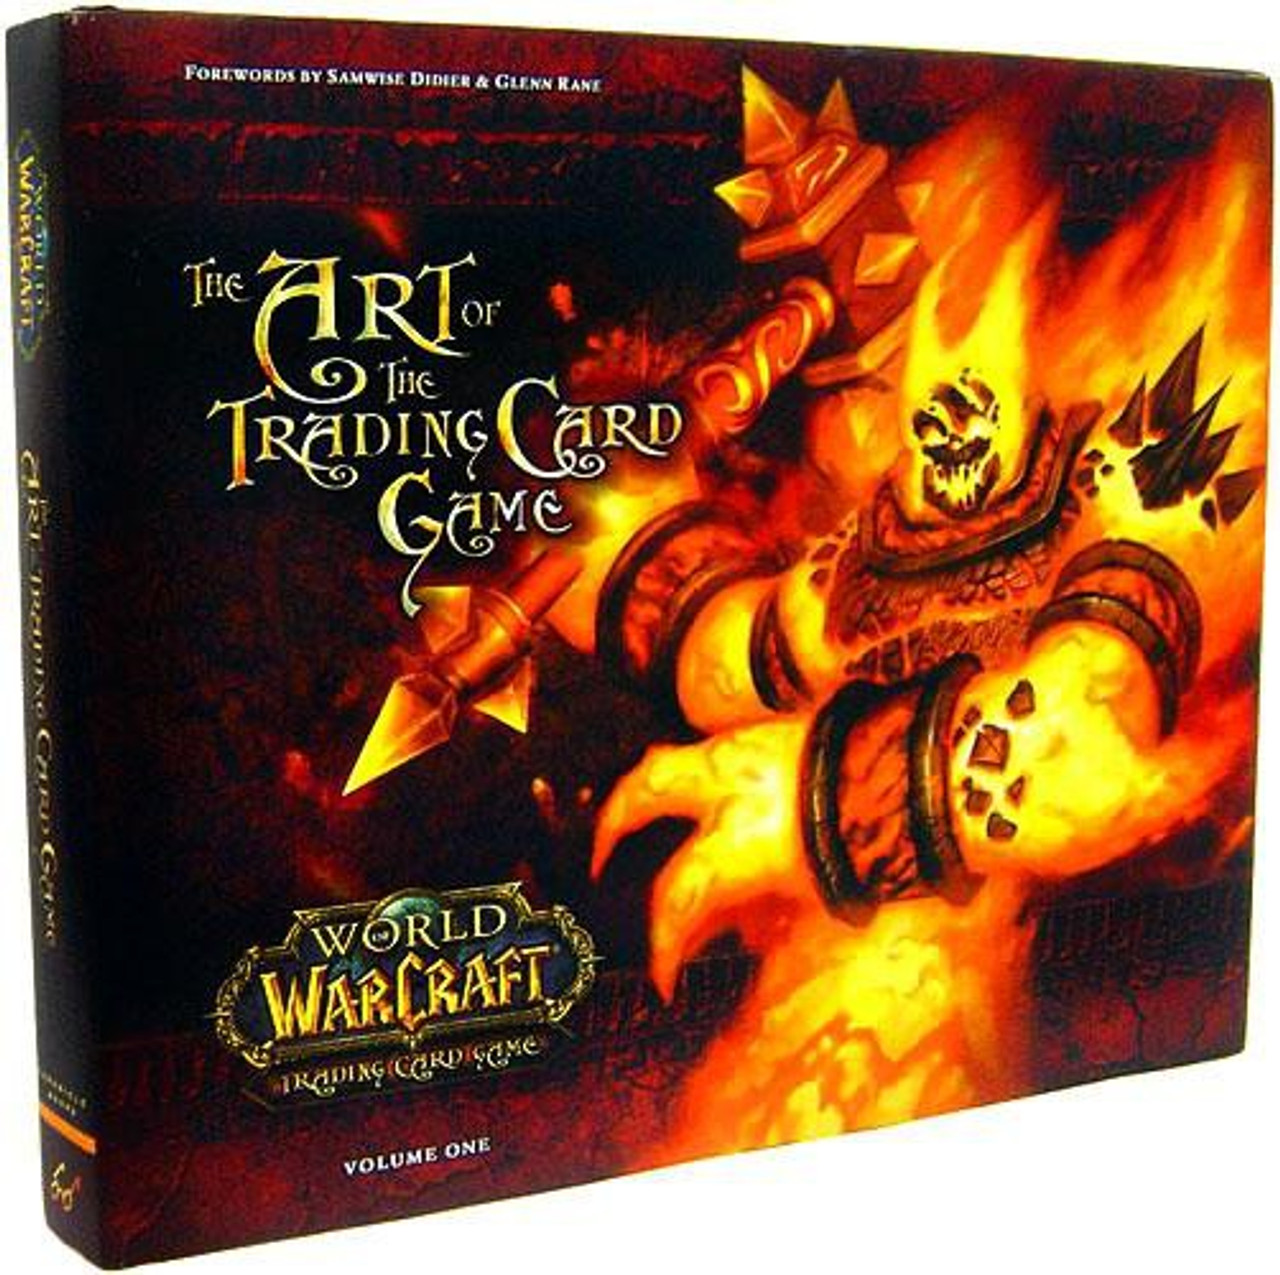 World of Warcraft The Art of the Trading Card Game Hardcover [Volume One]